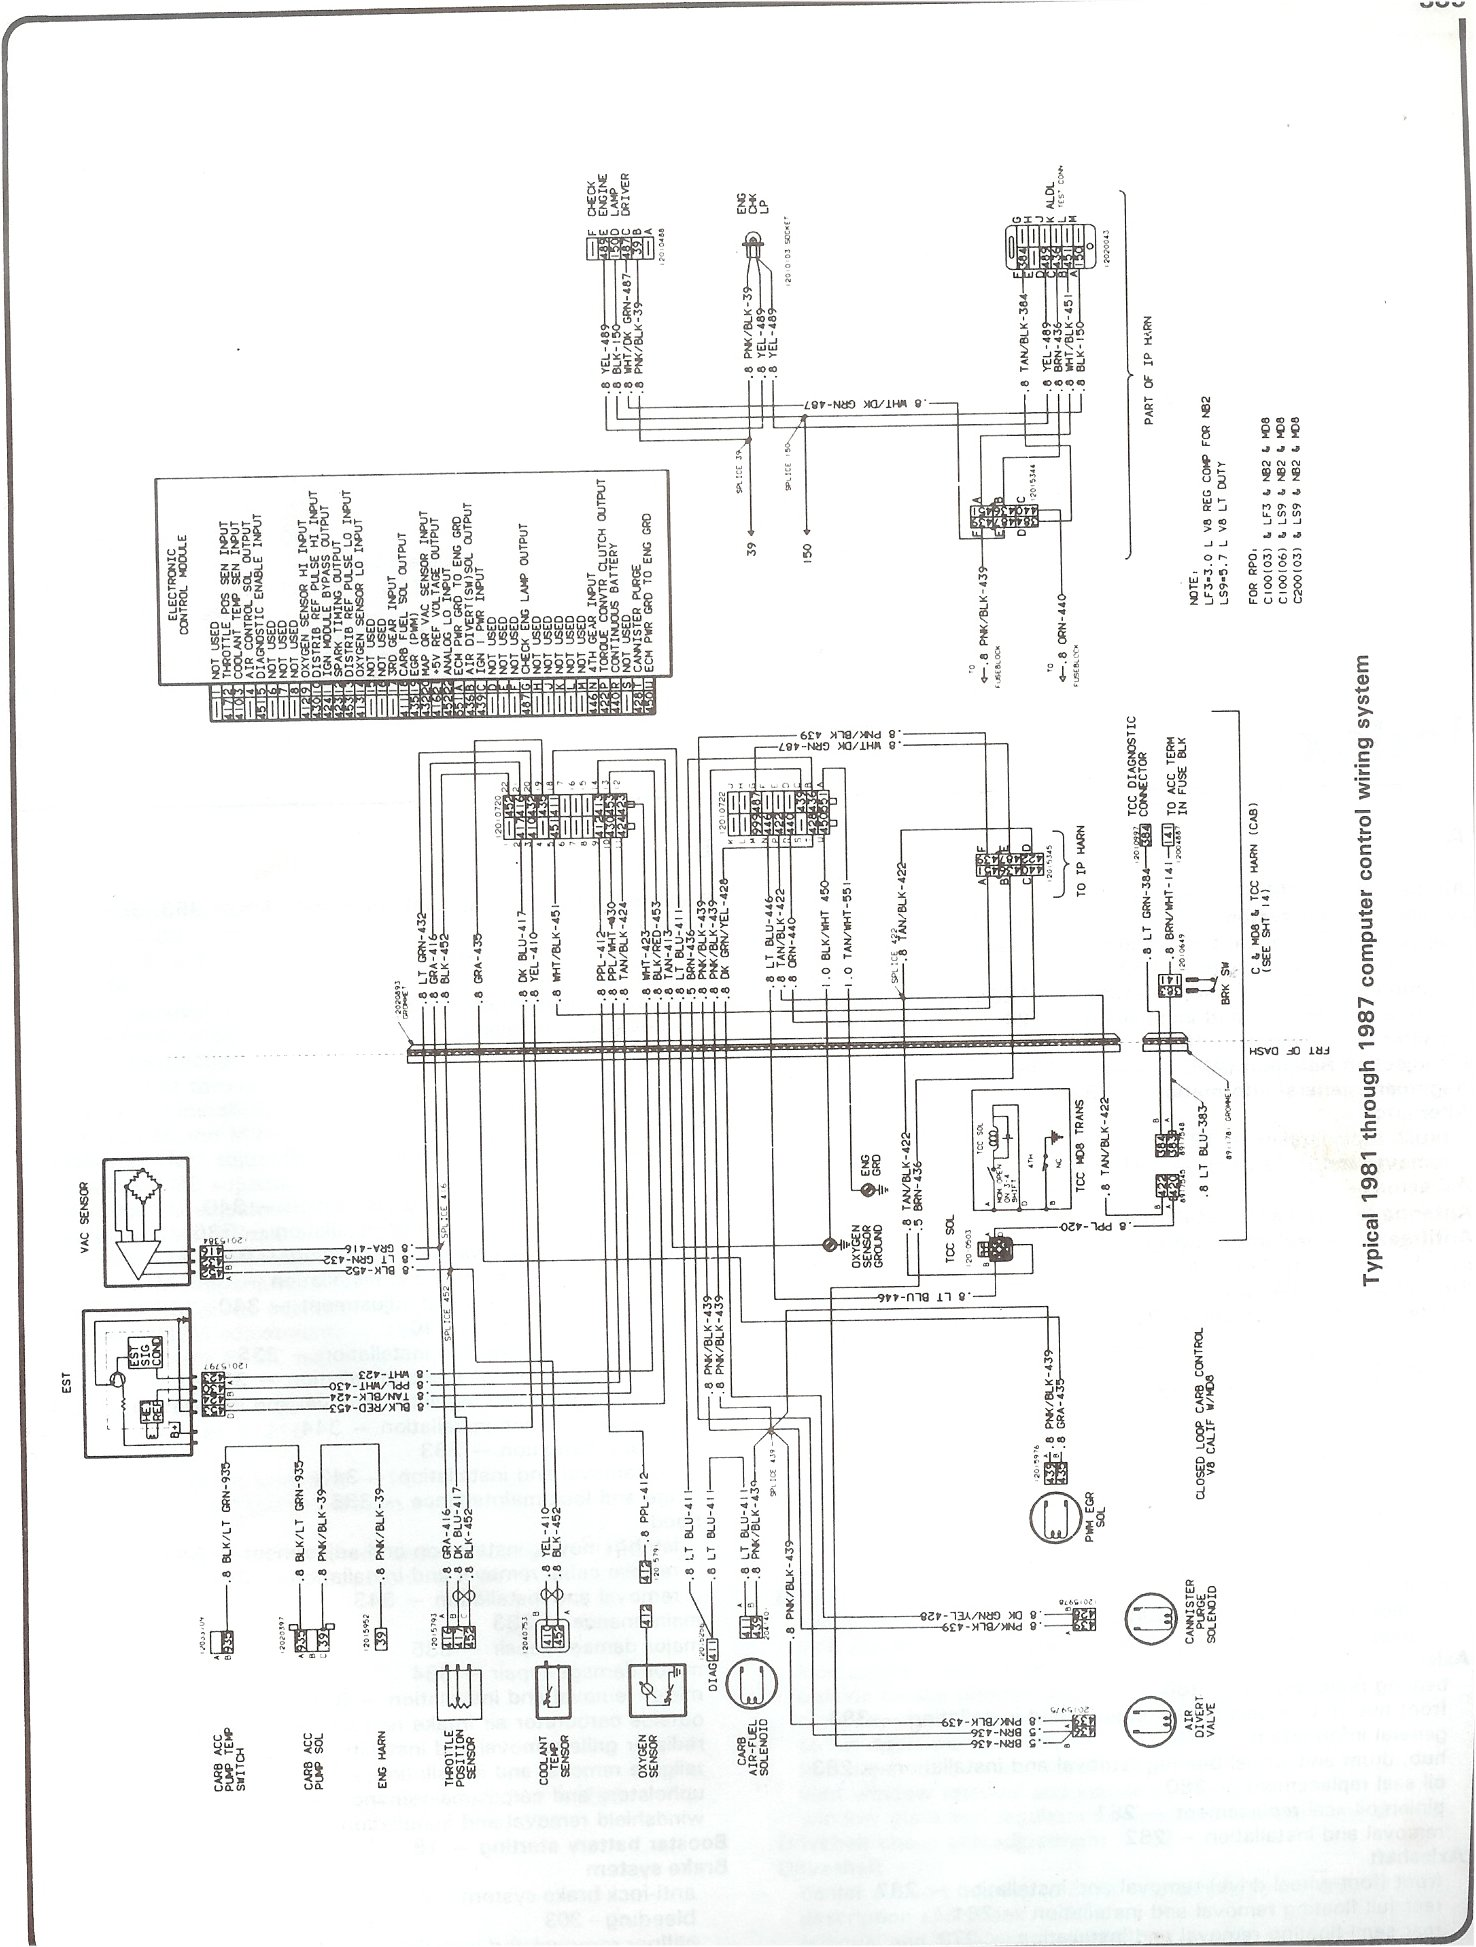 81 87_computer_control_wiring complete 73 87 wiring diagrams 1988 GMC Sierra 1500 at gsmx.co